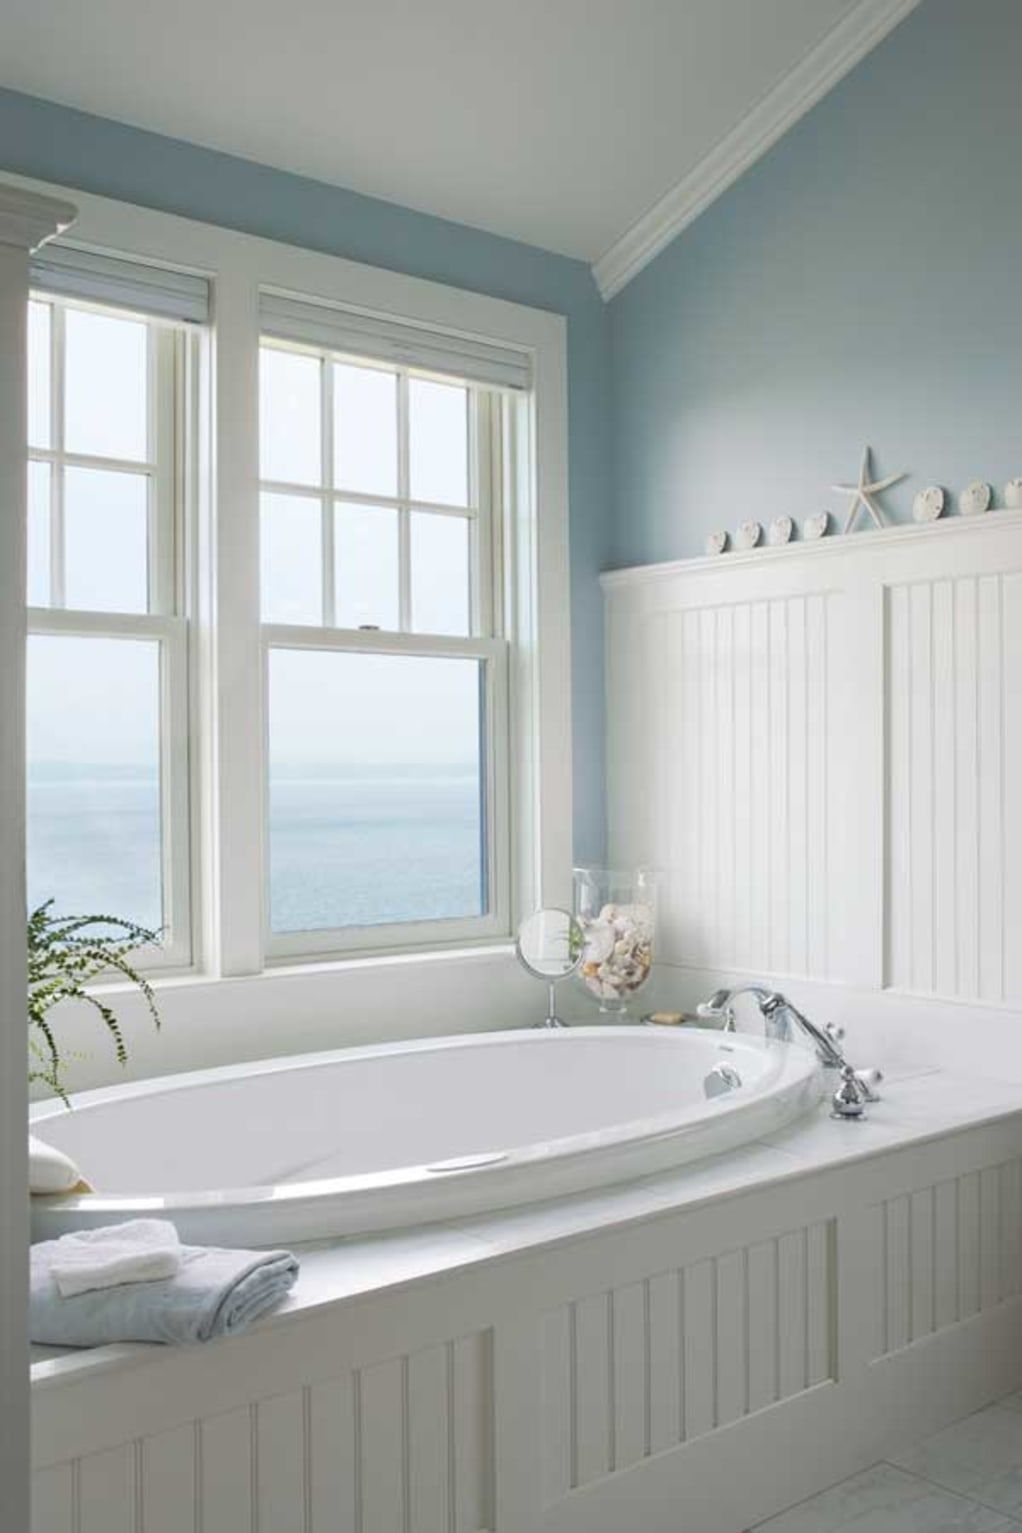 Photo of 3 Ways to Design a Bath in an Early House